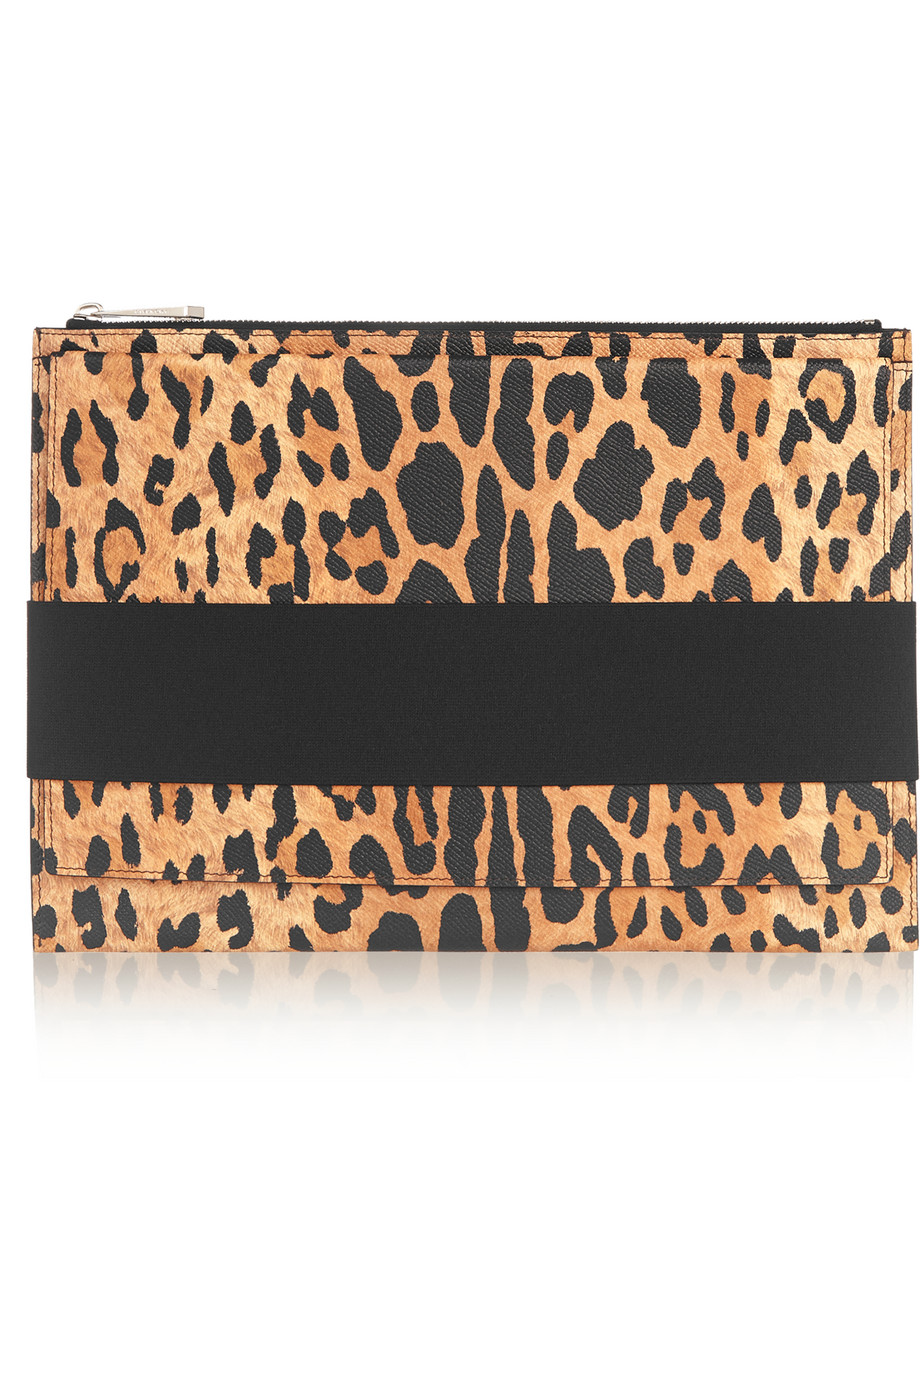 Givenchy Clutch in Leopard-Print Textured-Leather, Leopard Print, Women's